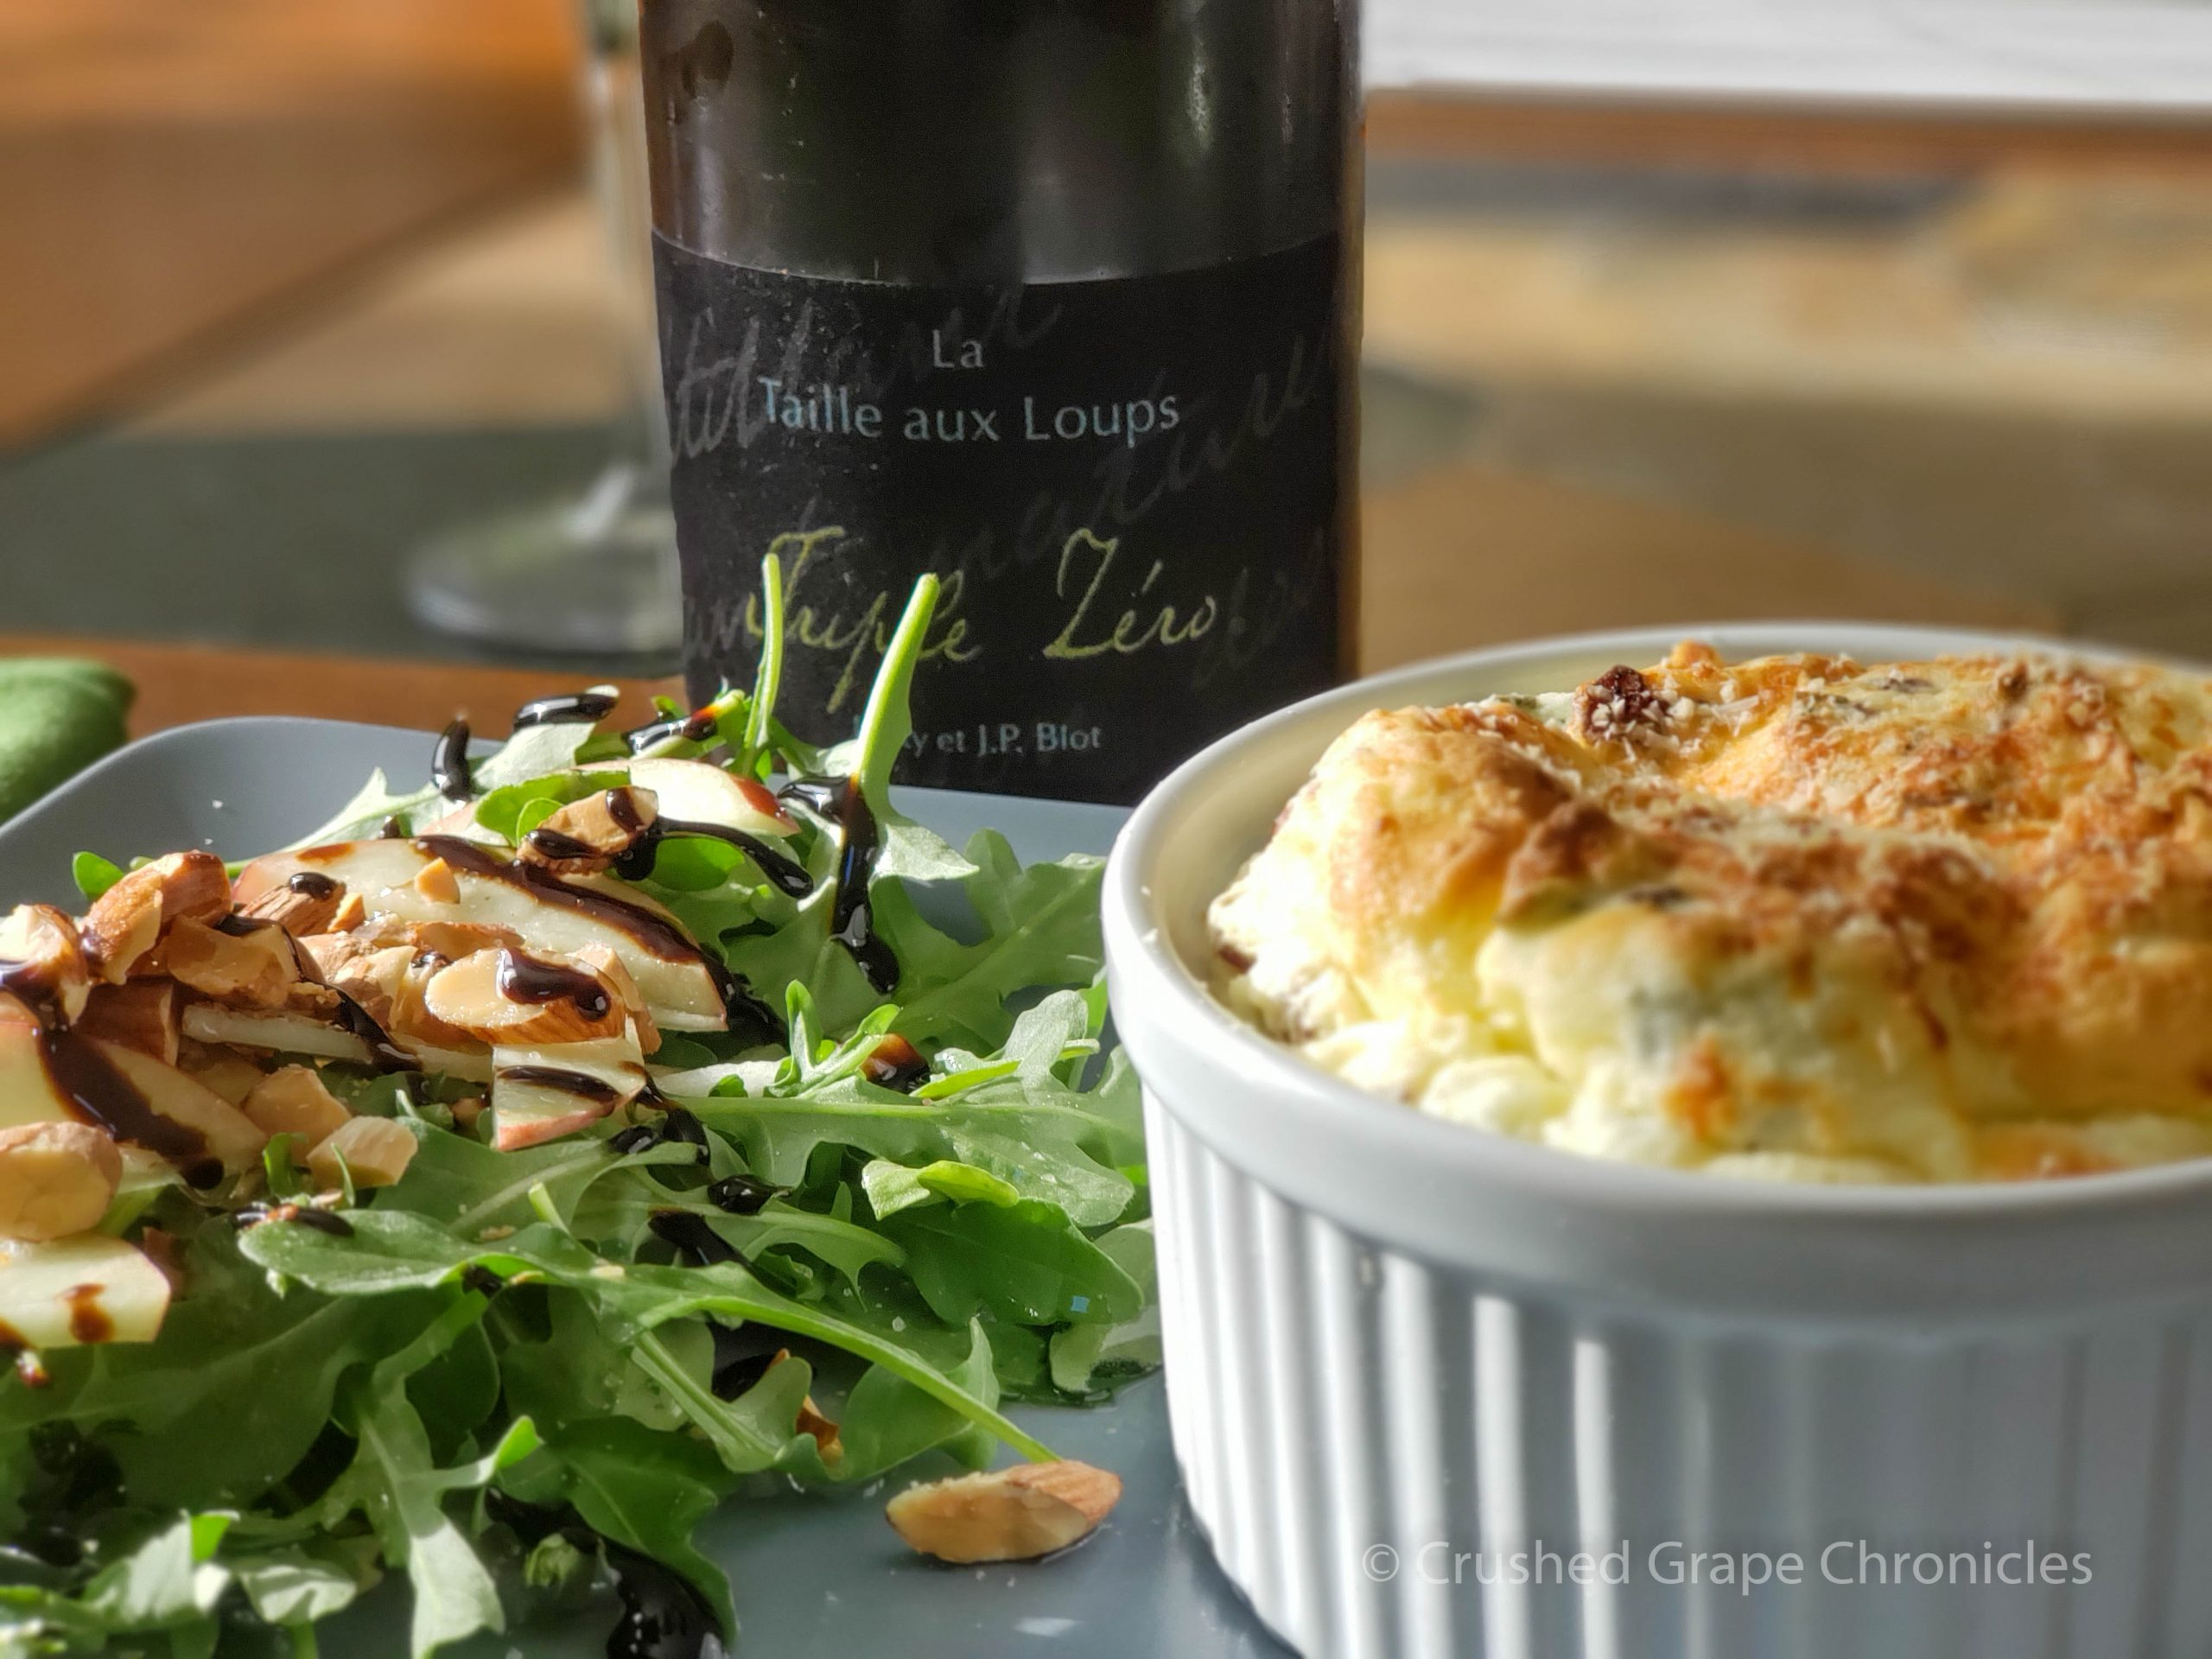 Triple Zero from Domaine de la Taille aux Loups in Montlouis-sur-Loire with a cheese souffle and salad